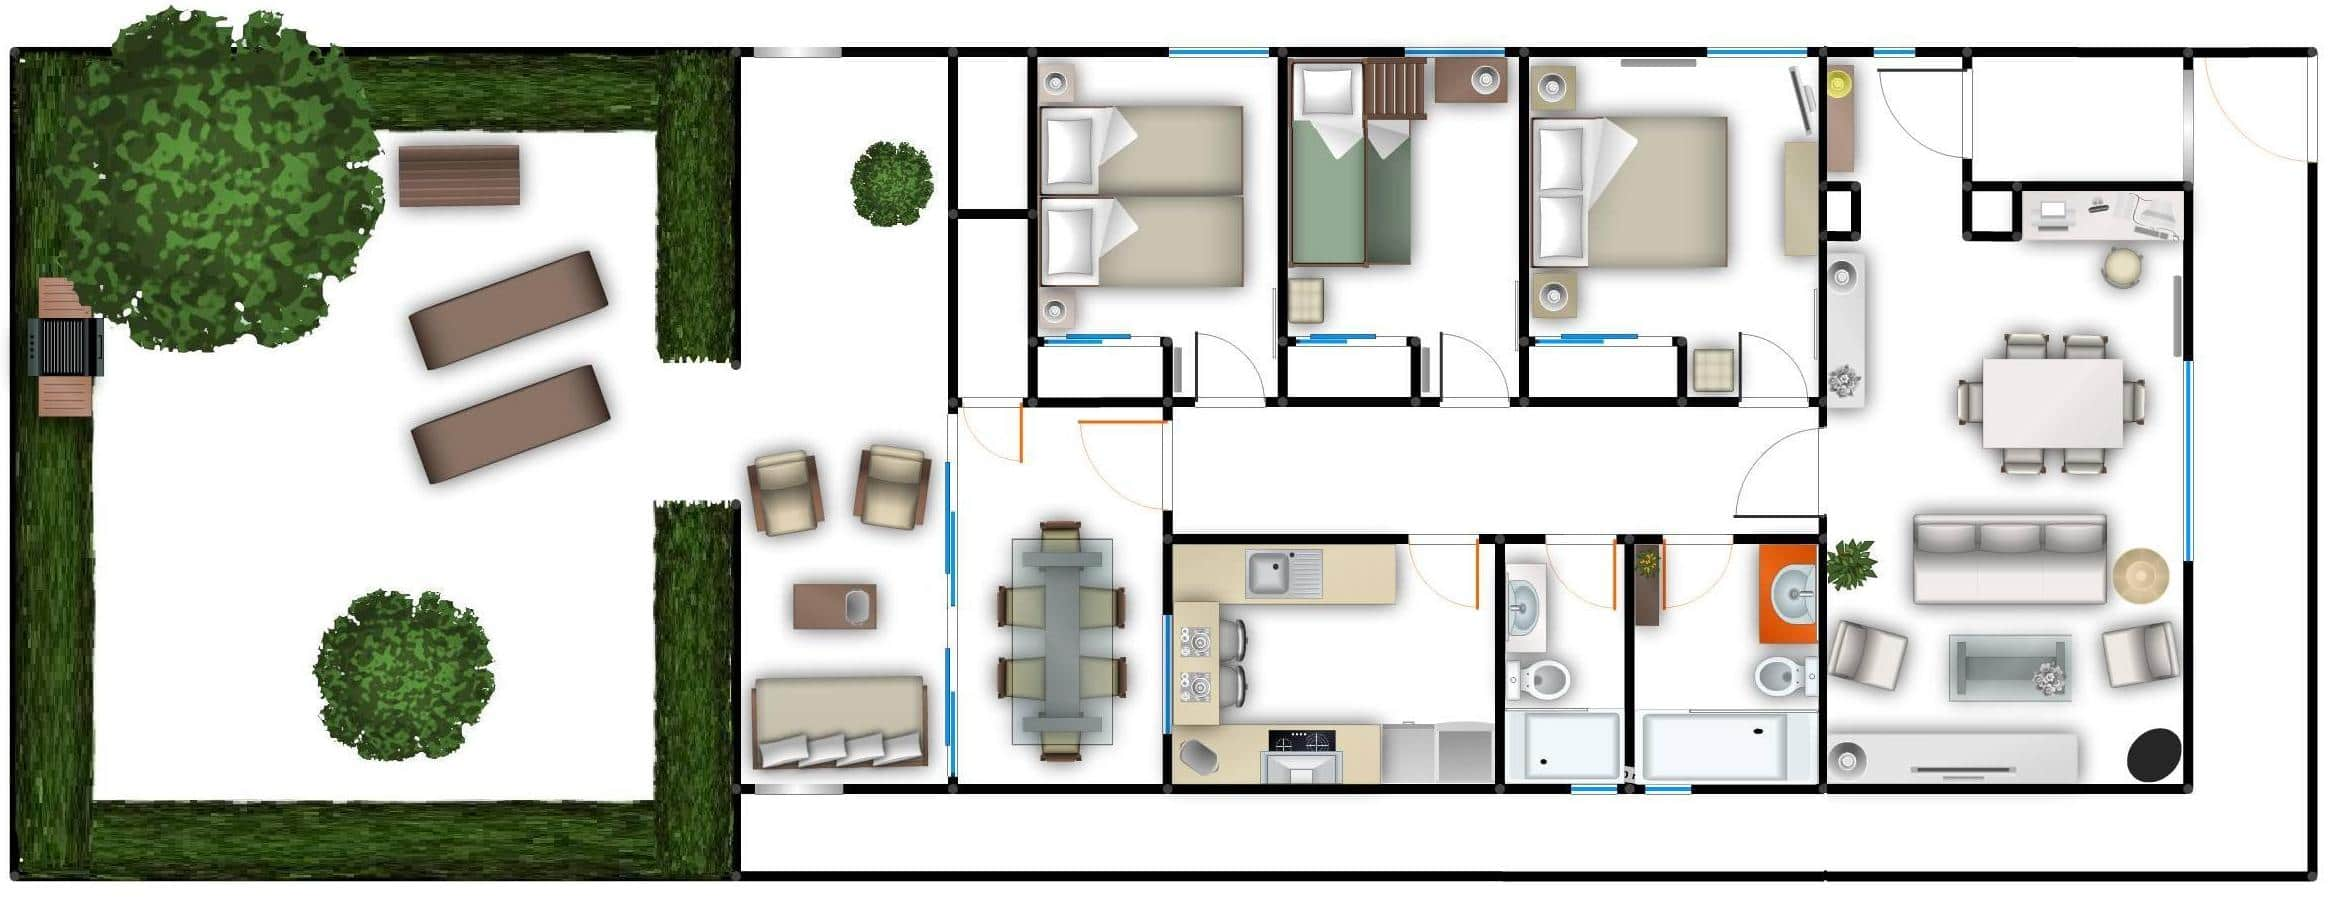 Del mar 37 floor plan, Colònia de Sant Pere, Mallorca, Holiday home for rent